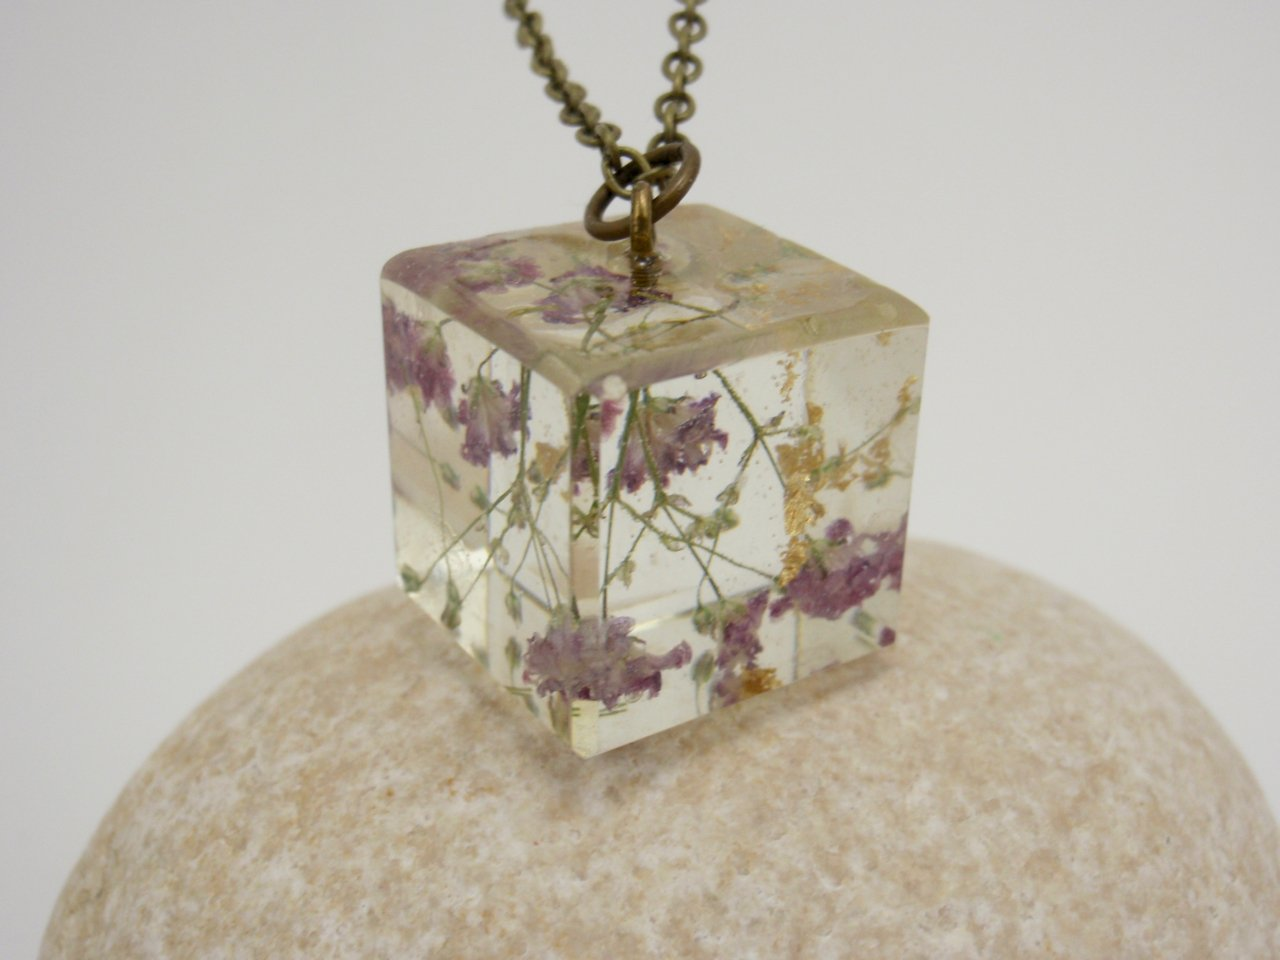 Cube shaped transparent eco resin necklace with real baby's breath flowers and golden leaves